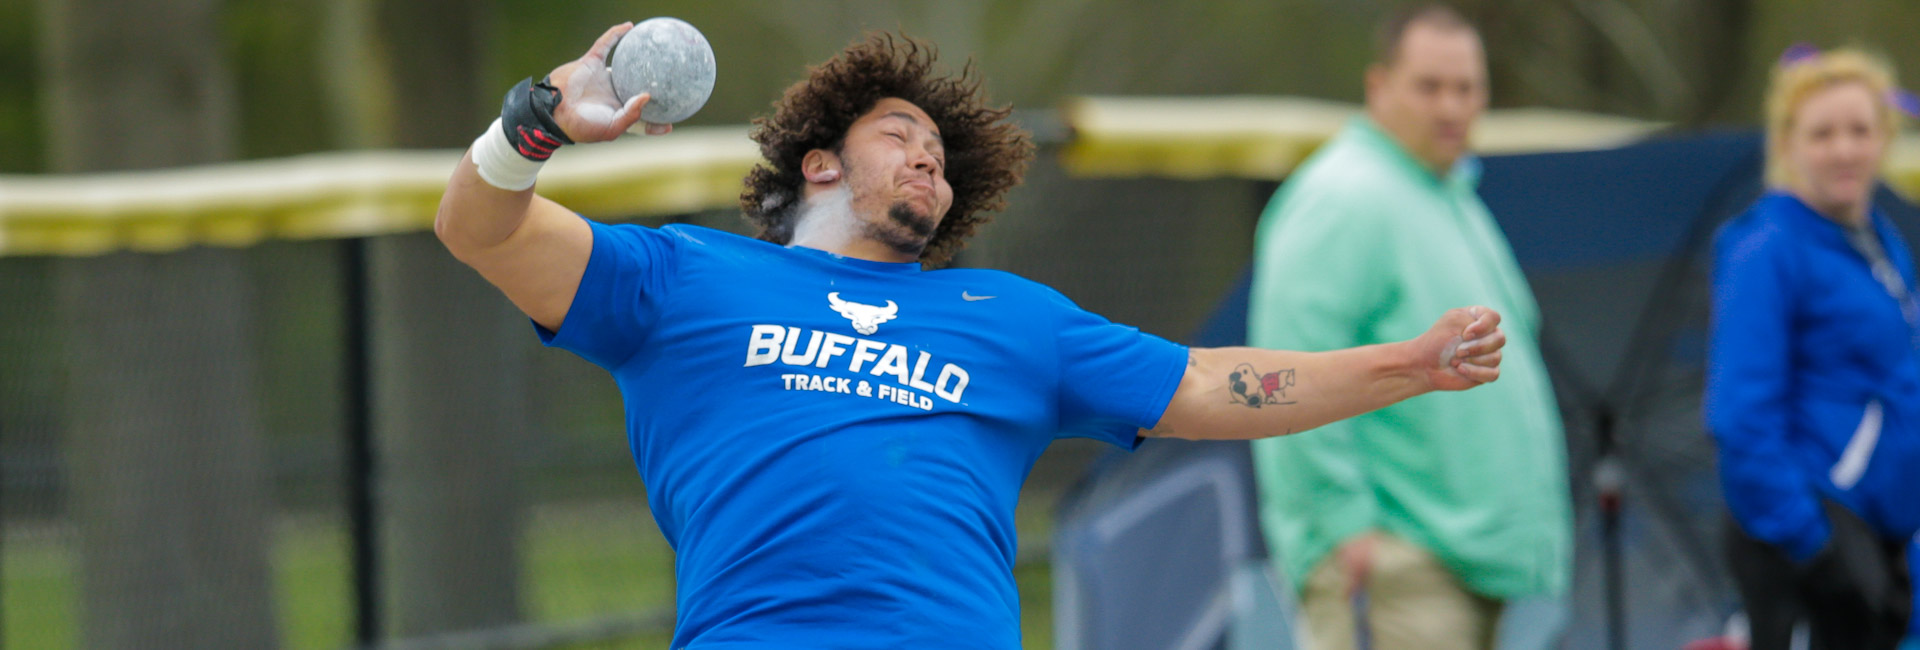 UB Men's Track & Field